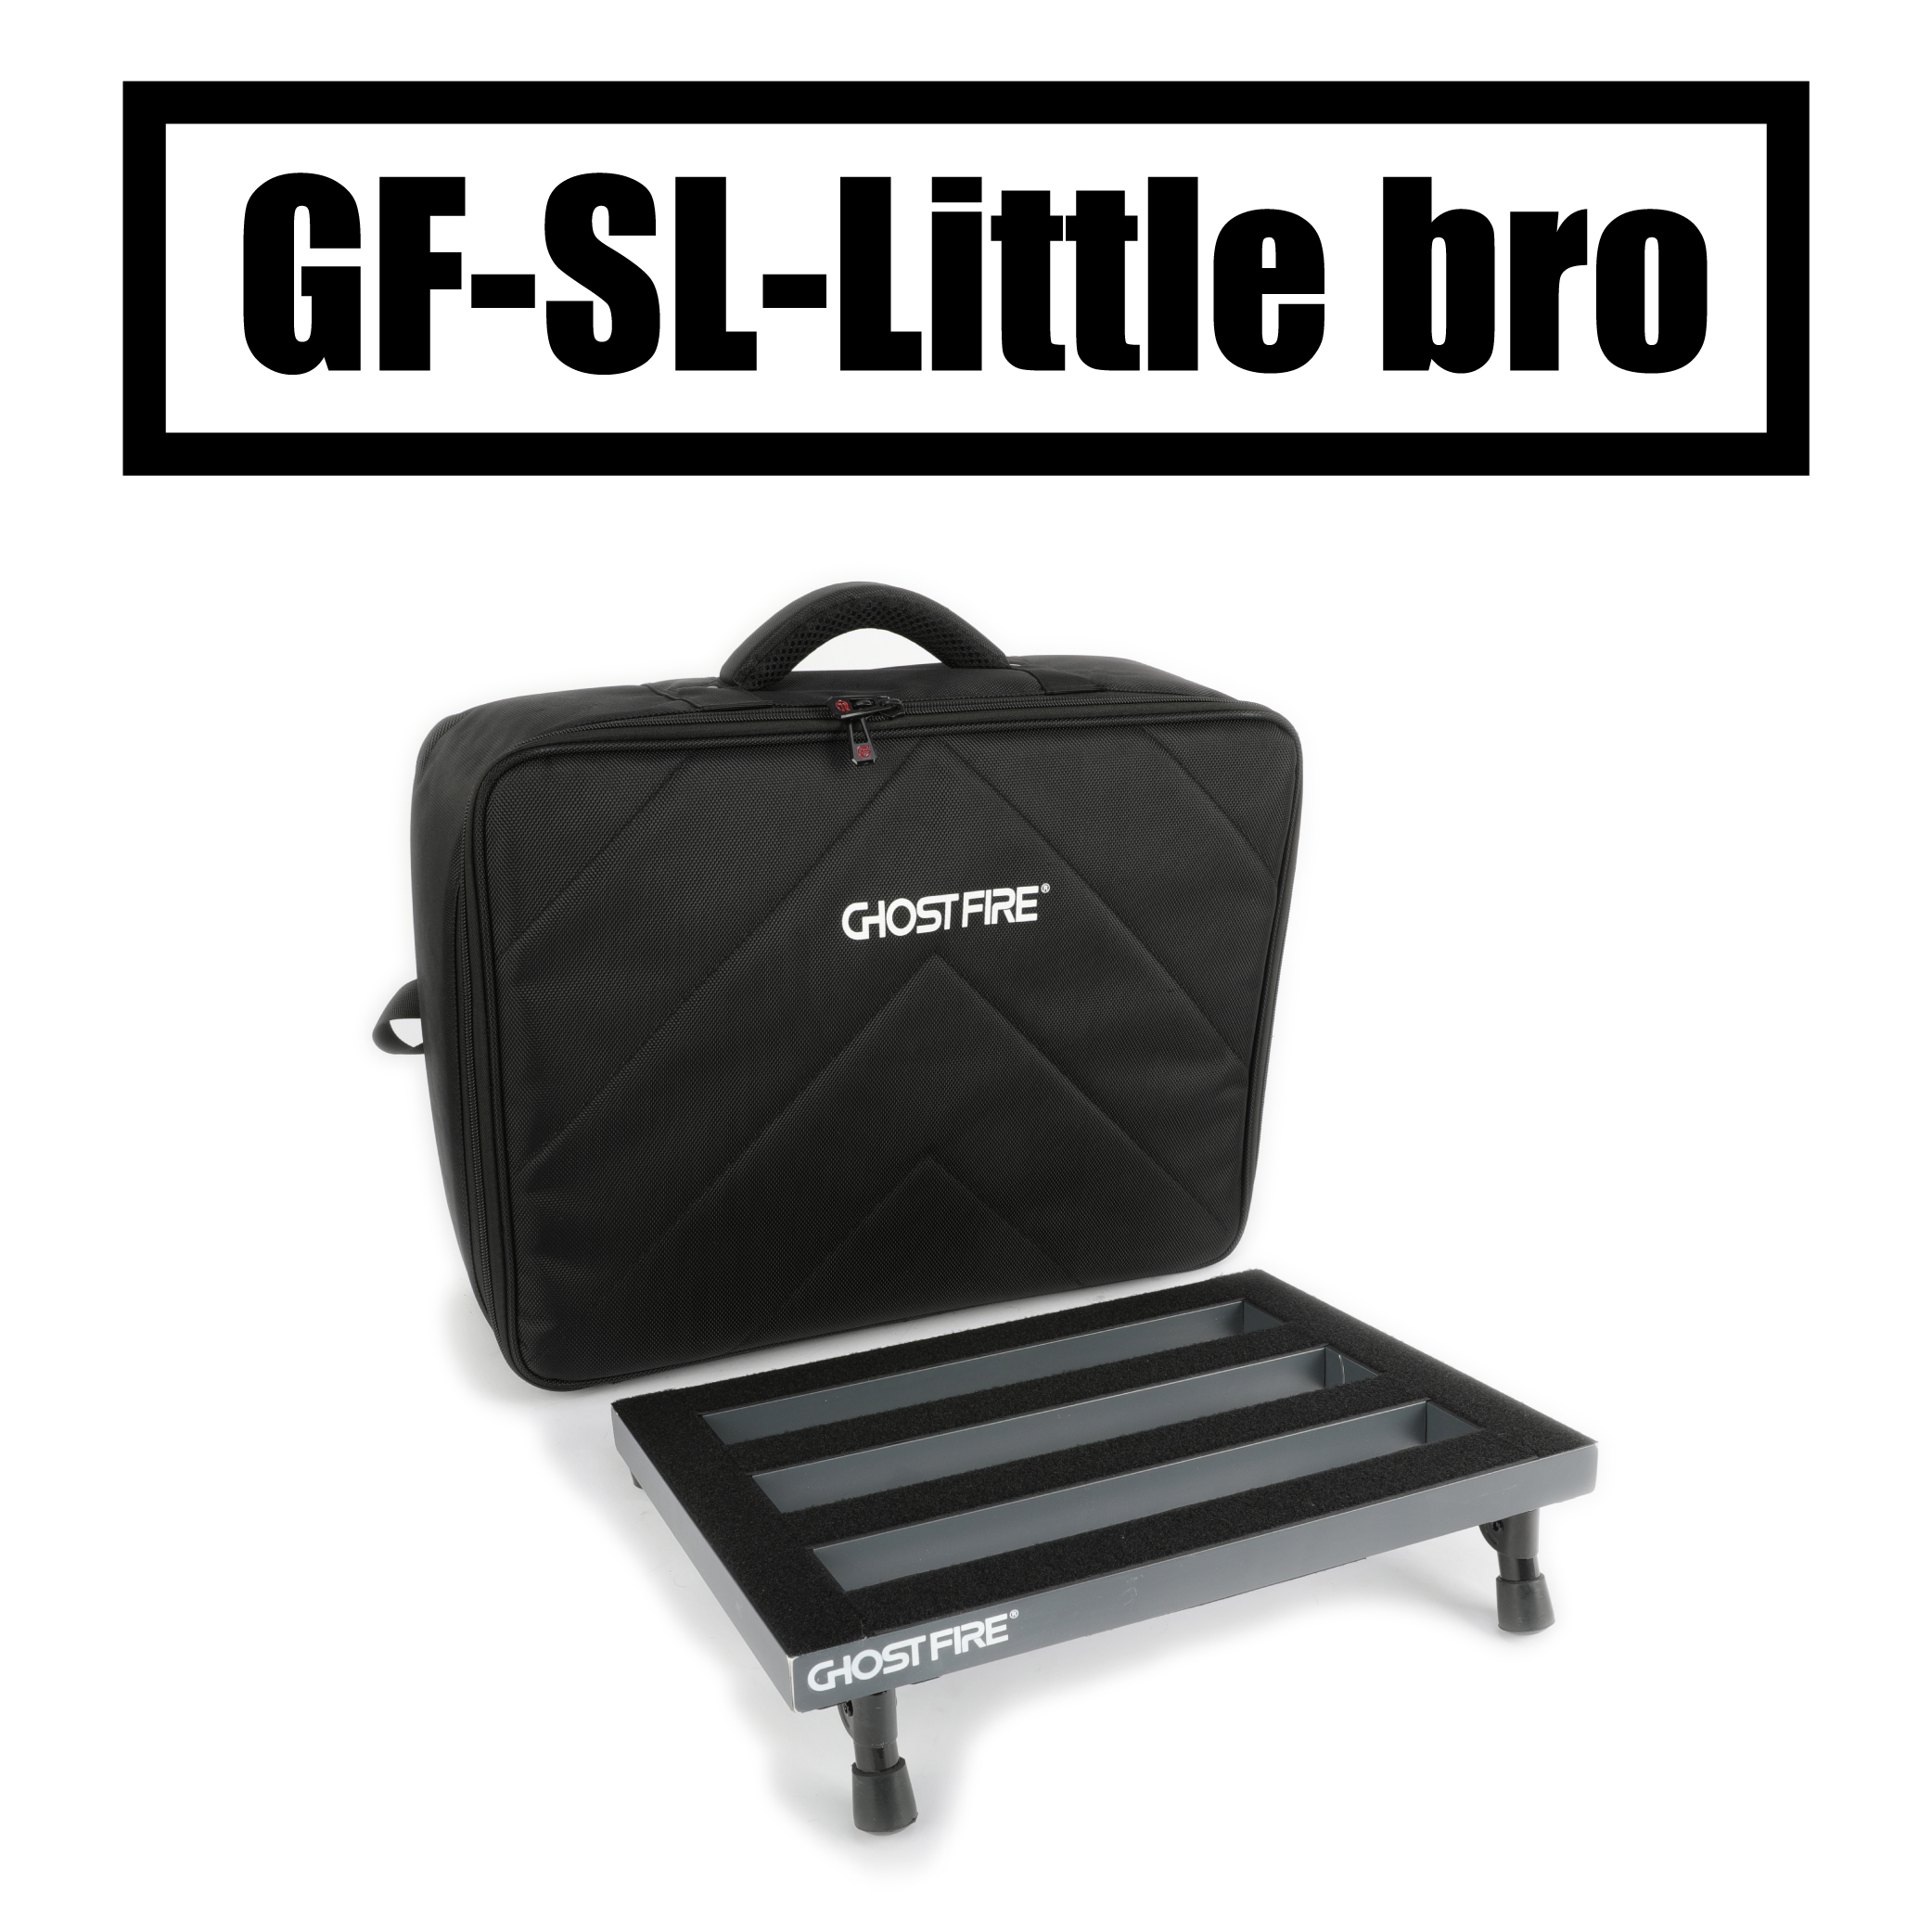 GF-SL-Little bro